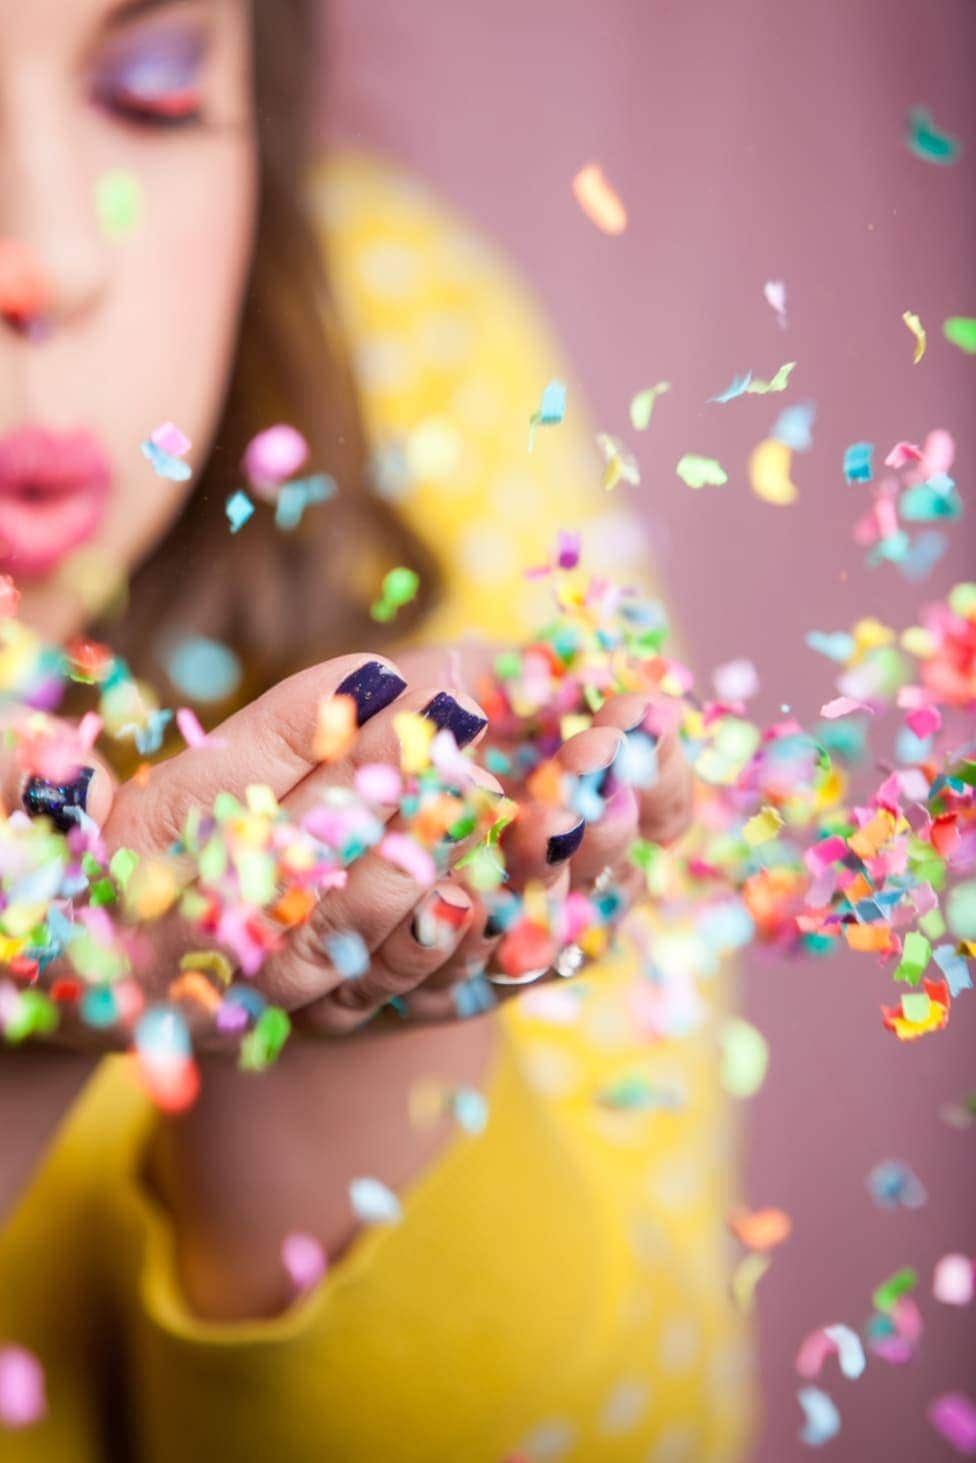 HOW TO TAKE THE PERFECT CONFETTI PHOTO